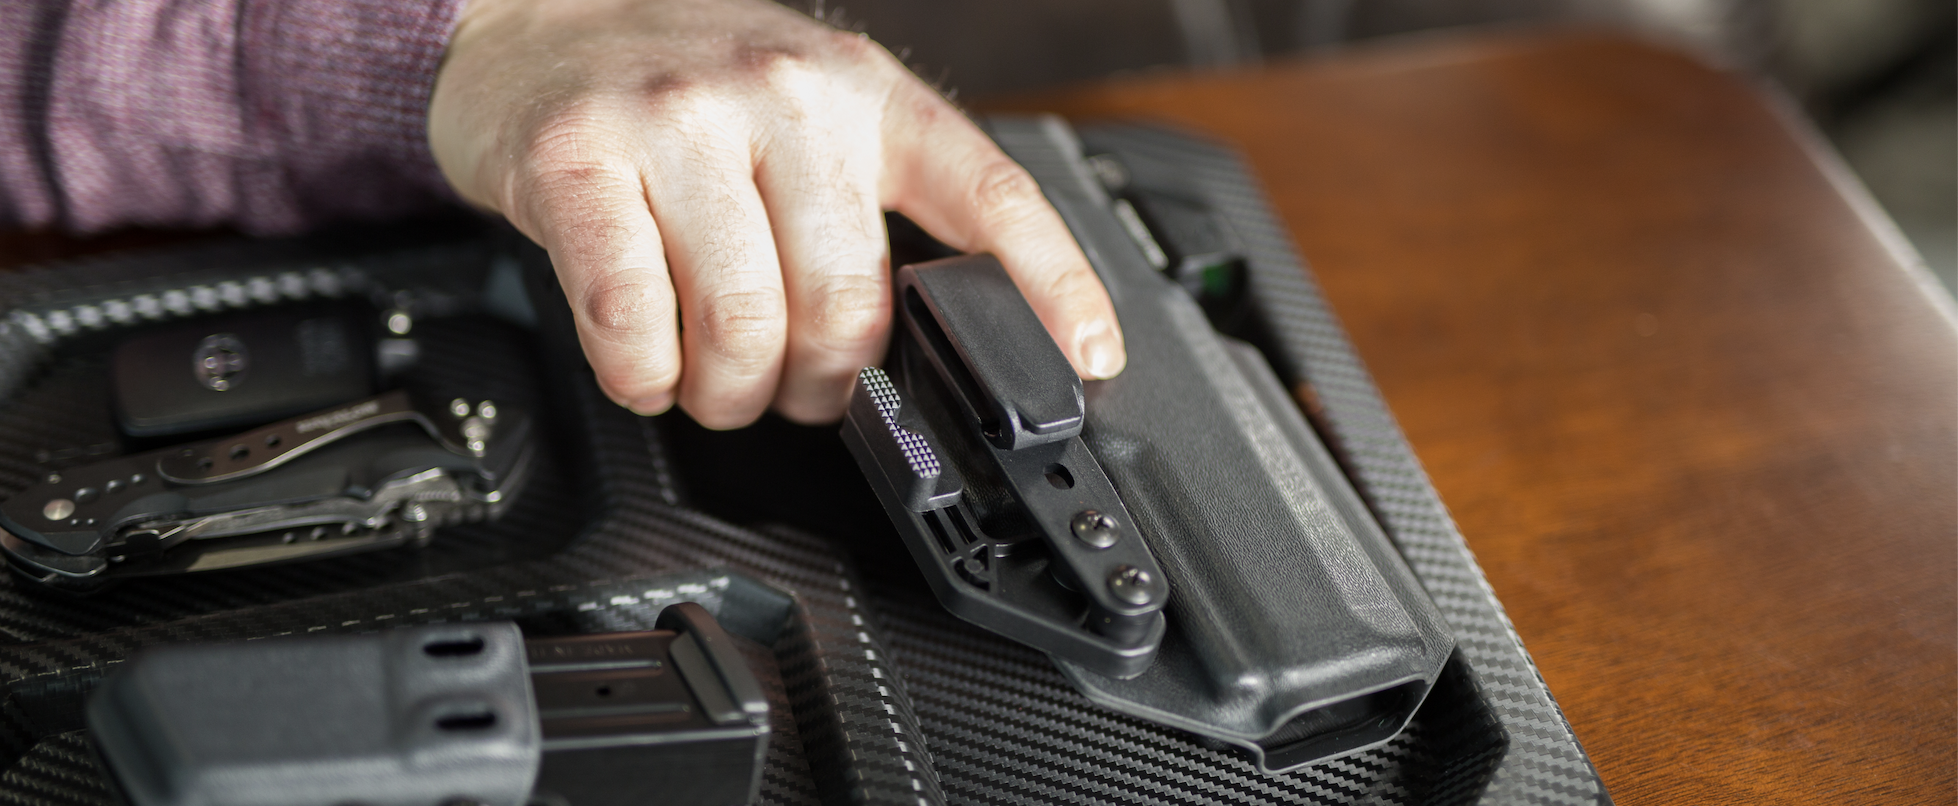 Top 5 Concealed Carry Essentials